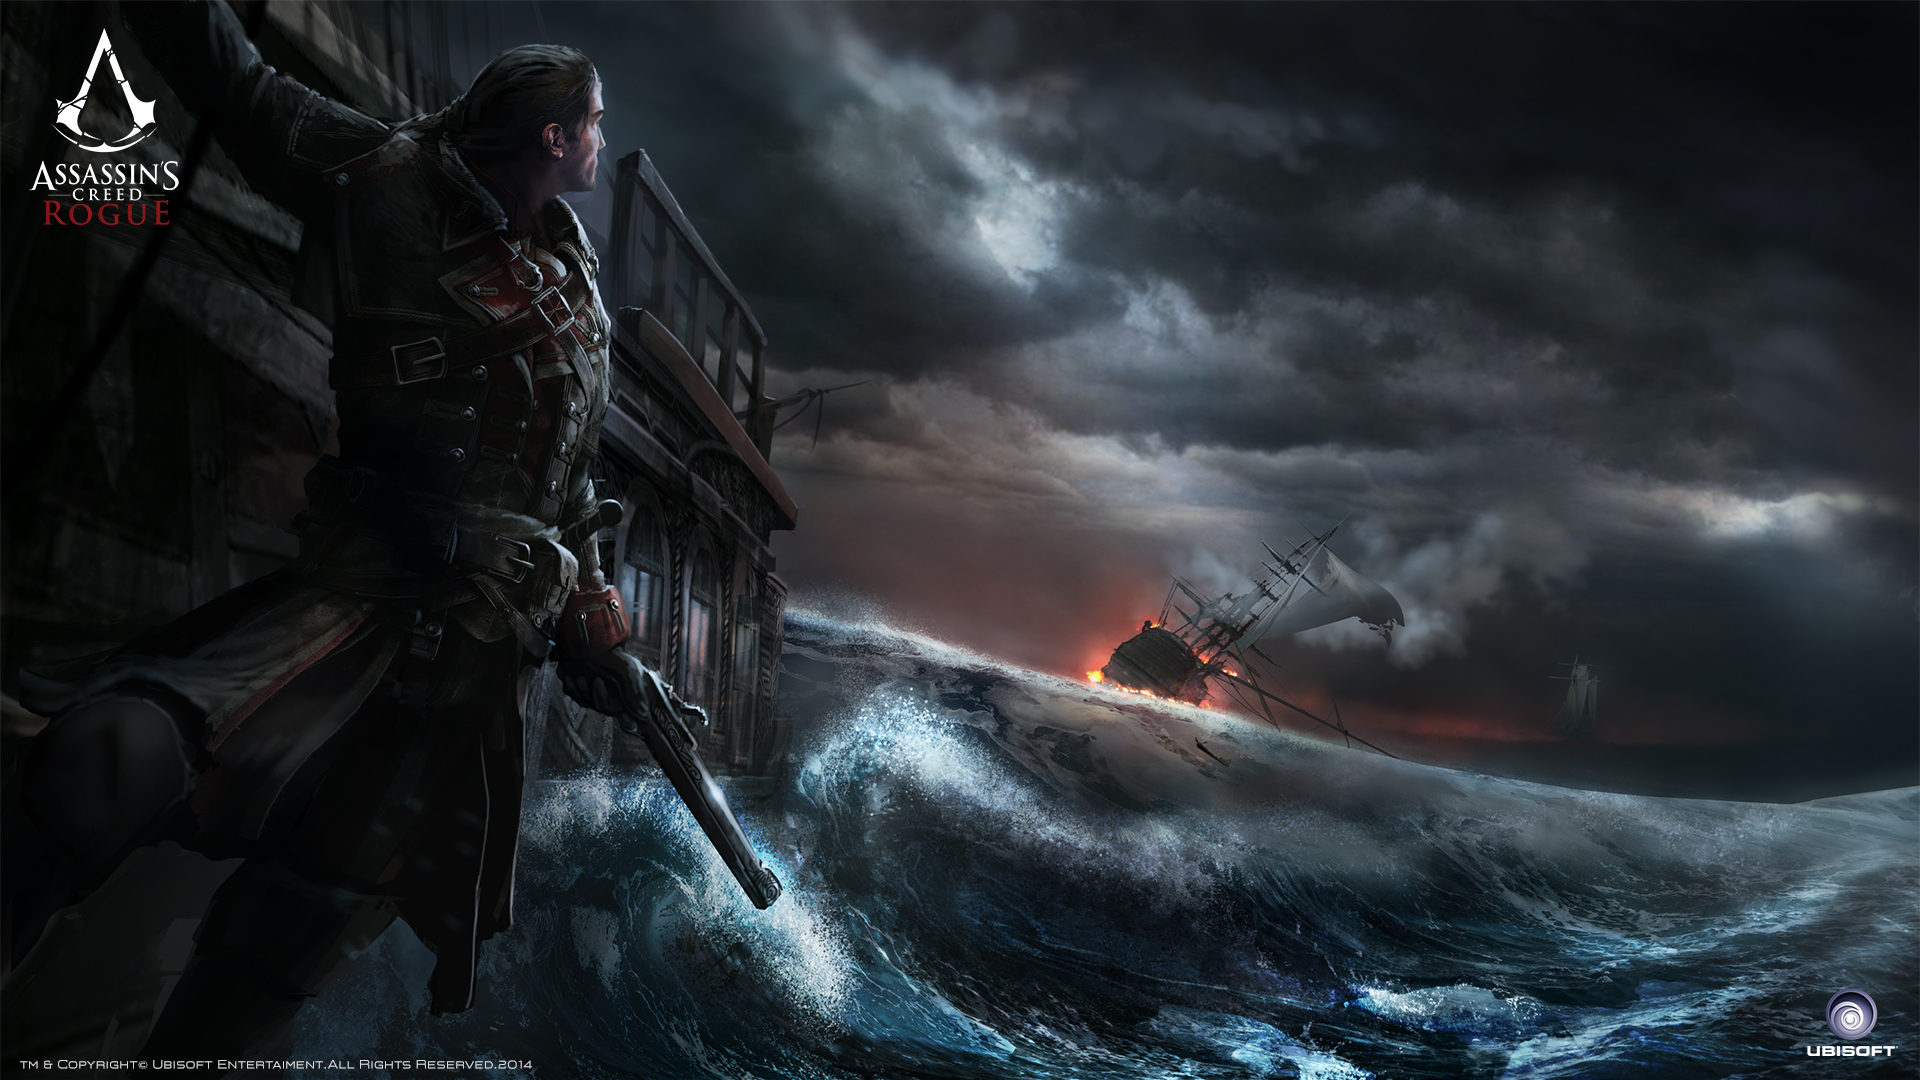 Assassin S Creed Rogue Hd Wallpaper Background Image 1920x1080